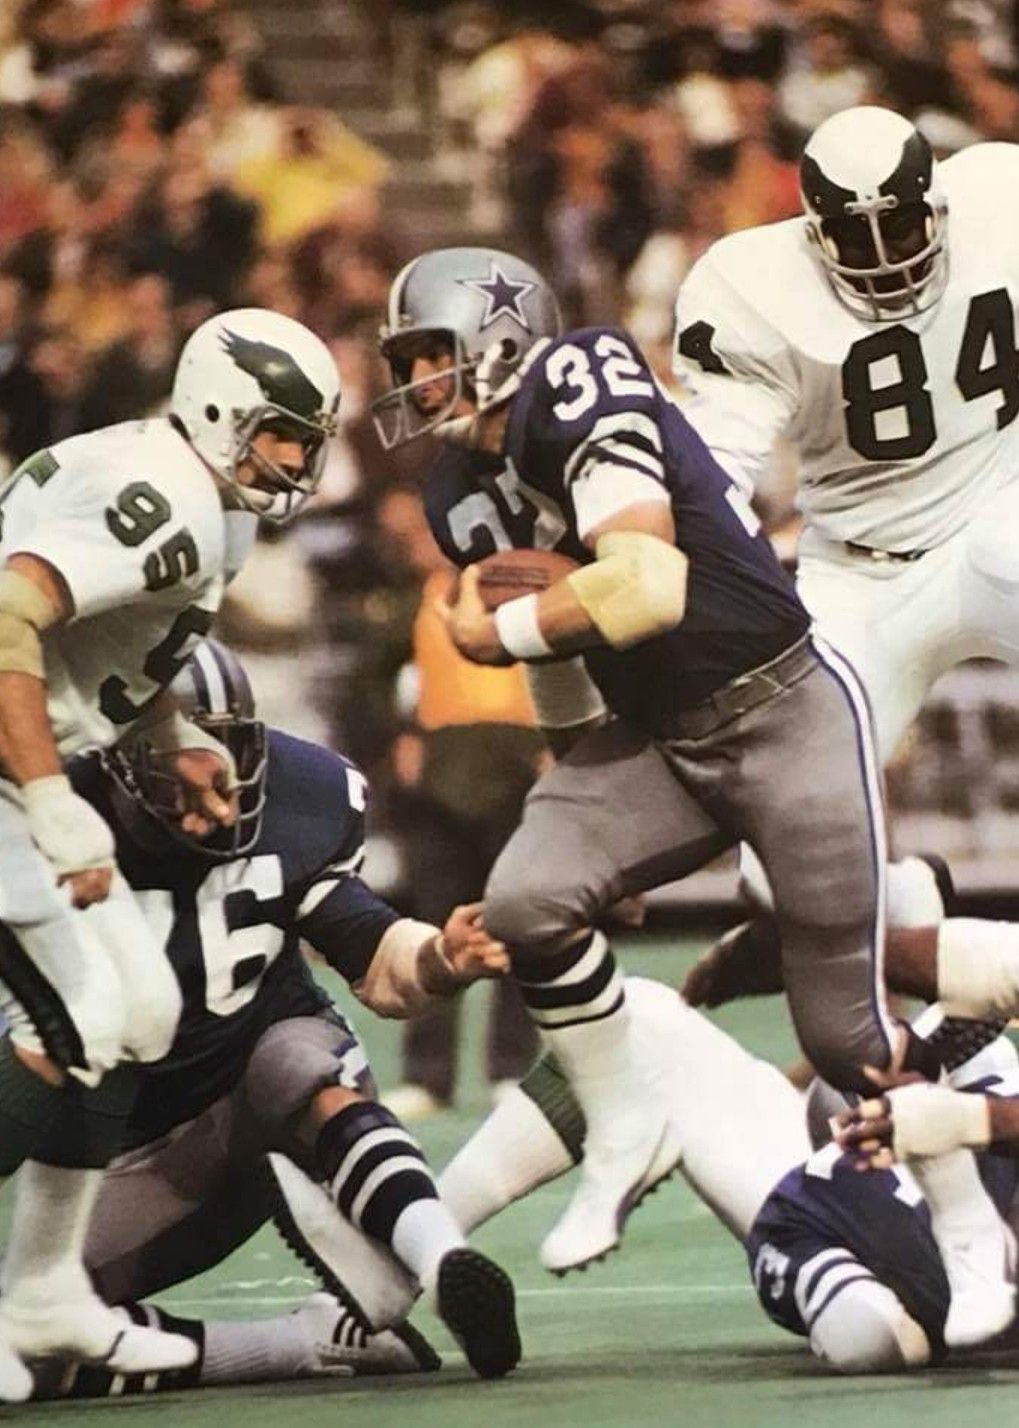 1f1a93b711f Walt Garrison - One tough RB for Cowboys | Texas | Dallas cowboys ...